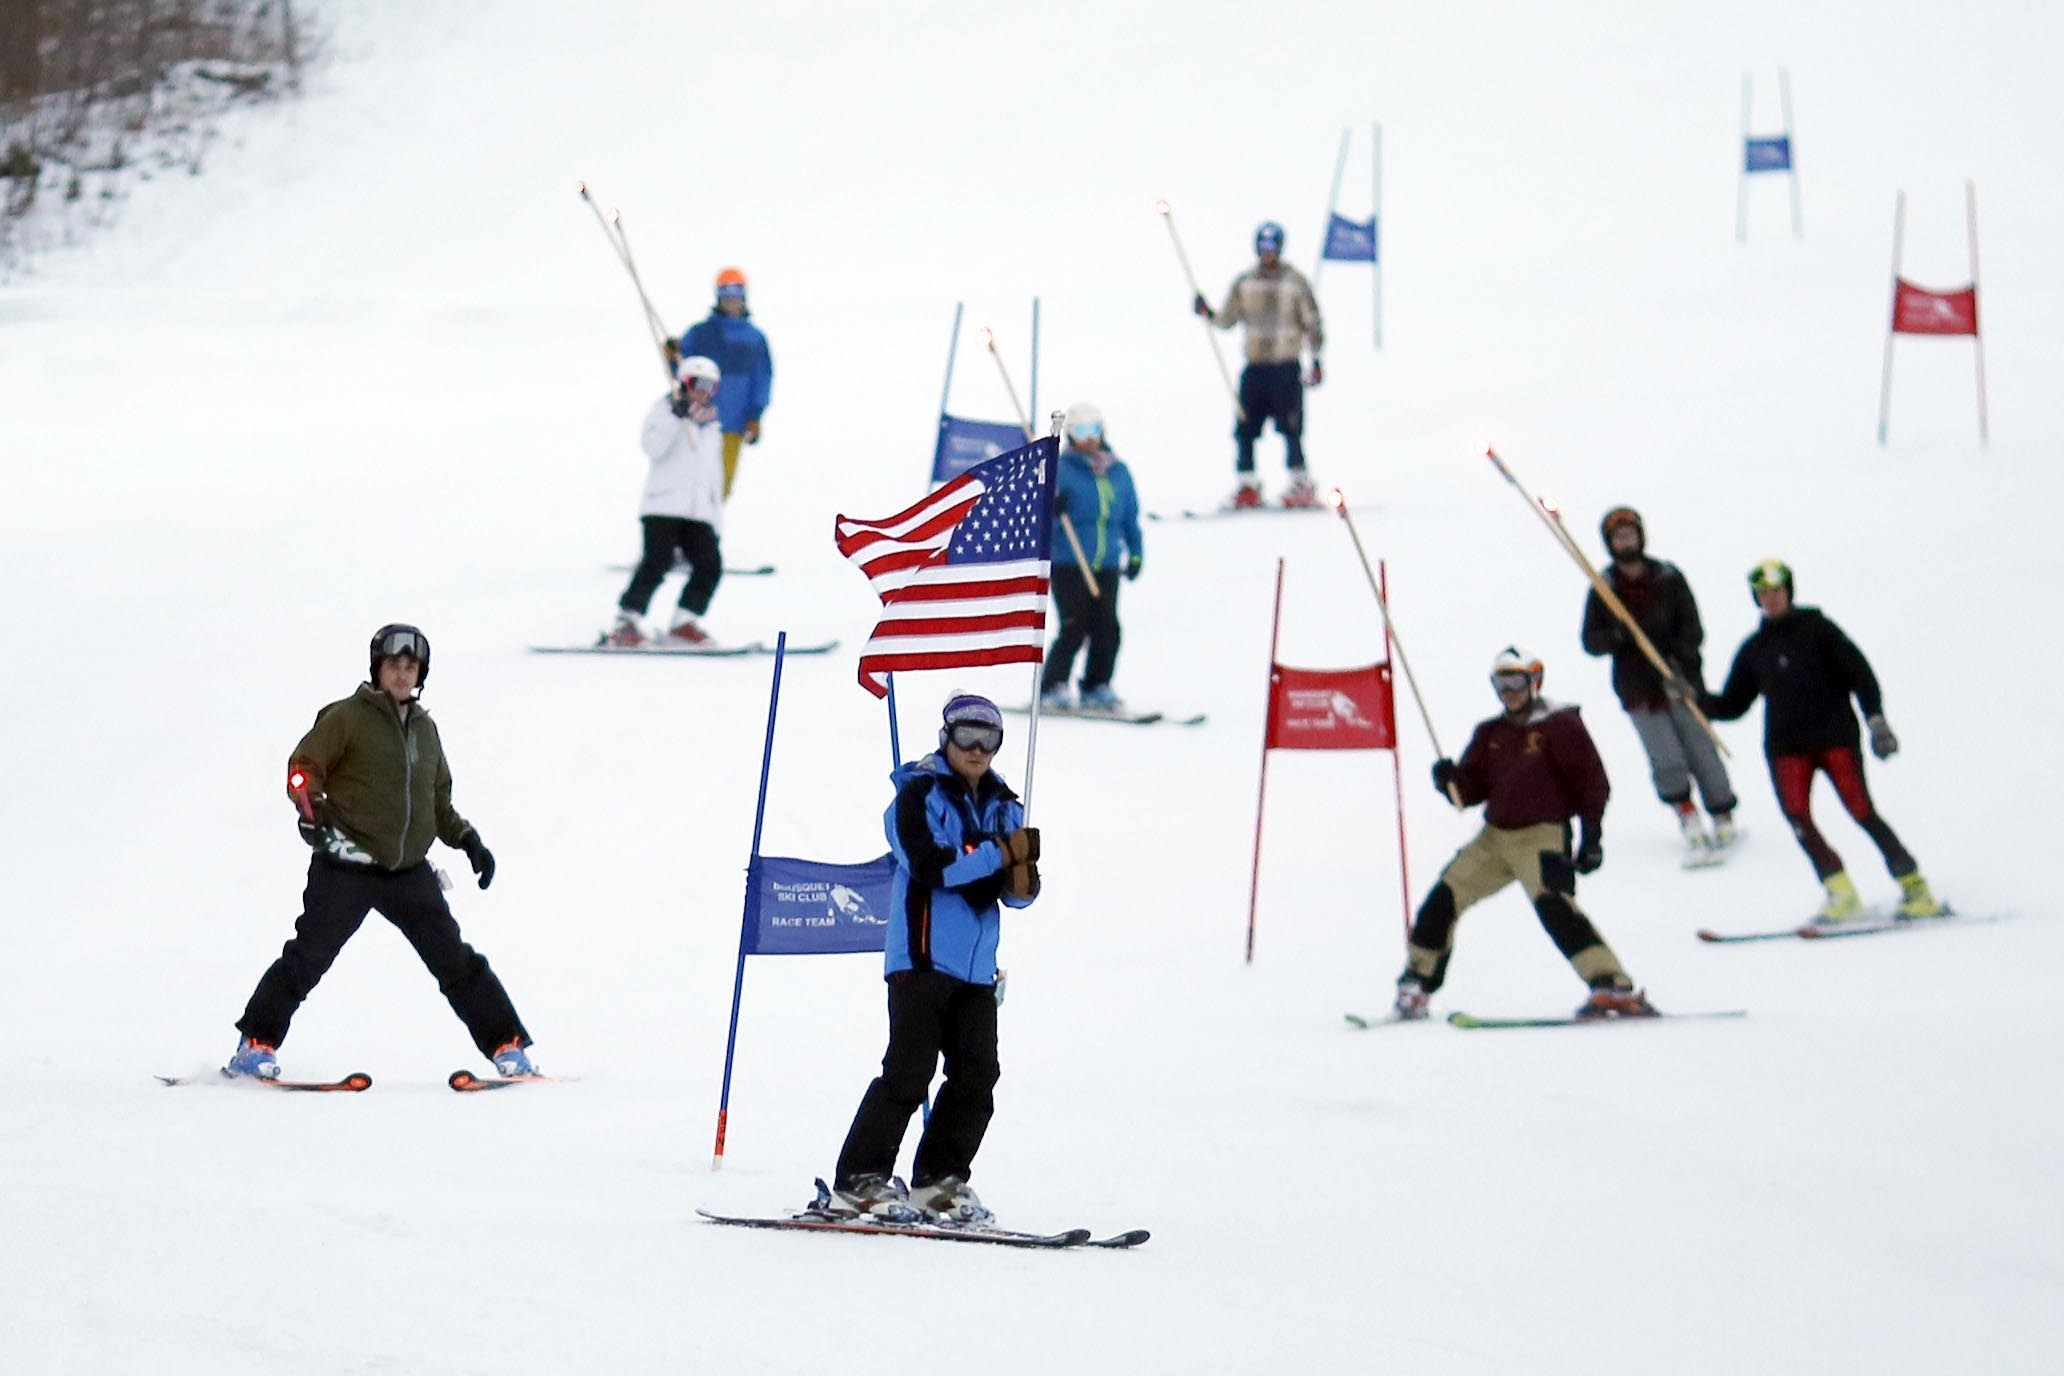 As former teammates of Navy Lt. Steven Combs ski through the gates in total silence, the only sound the crowd gathered below could hear was the swishing of skis through snow on Wednesday, Feb. 14, 2018. The former racers, coaches, friends, and family of the late Lt. Combs, along with current high school ski racers, gathered at Bousquet Ski Area in Pittsfield to pay tribute to the navy pilot who was killed in a crash on the Philippine Sea on Nov. 22, 2017. (Stephanie Zollshan/The Berkshire Eagle via AP)